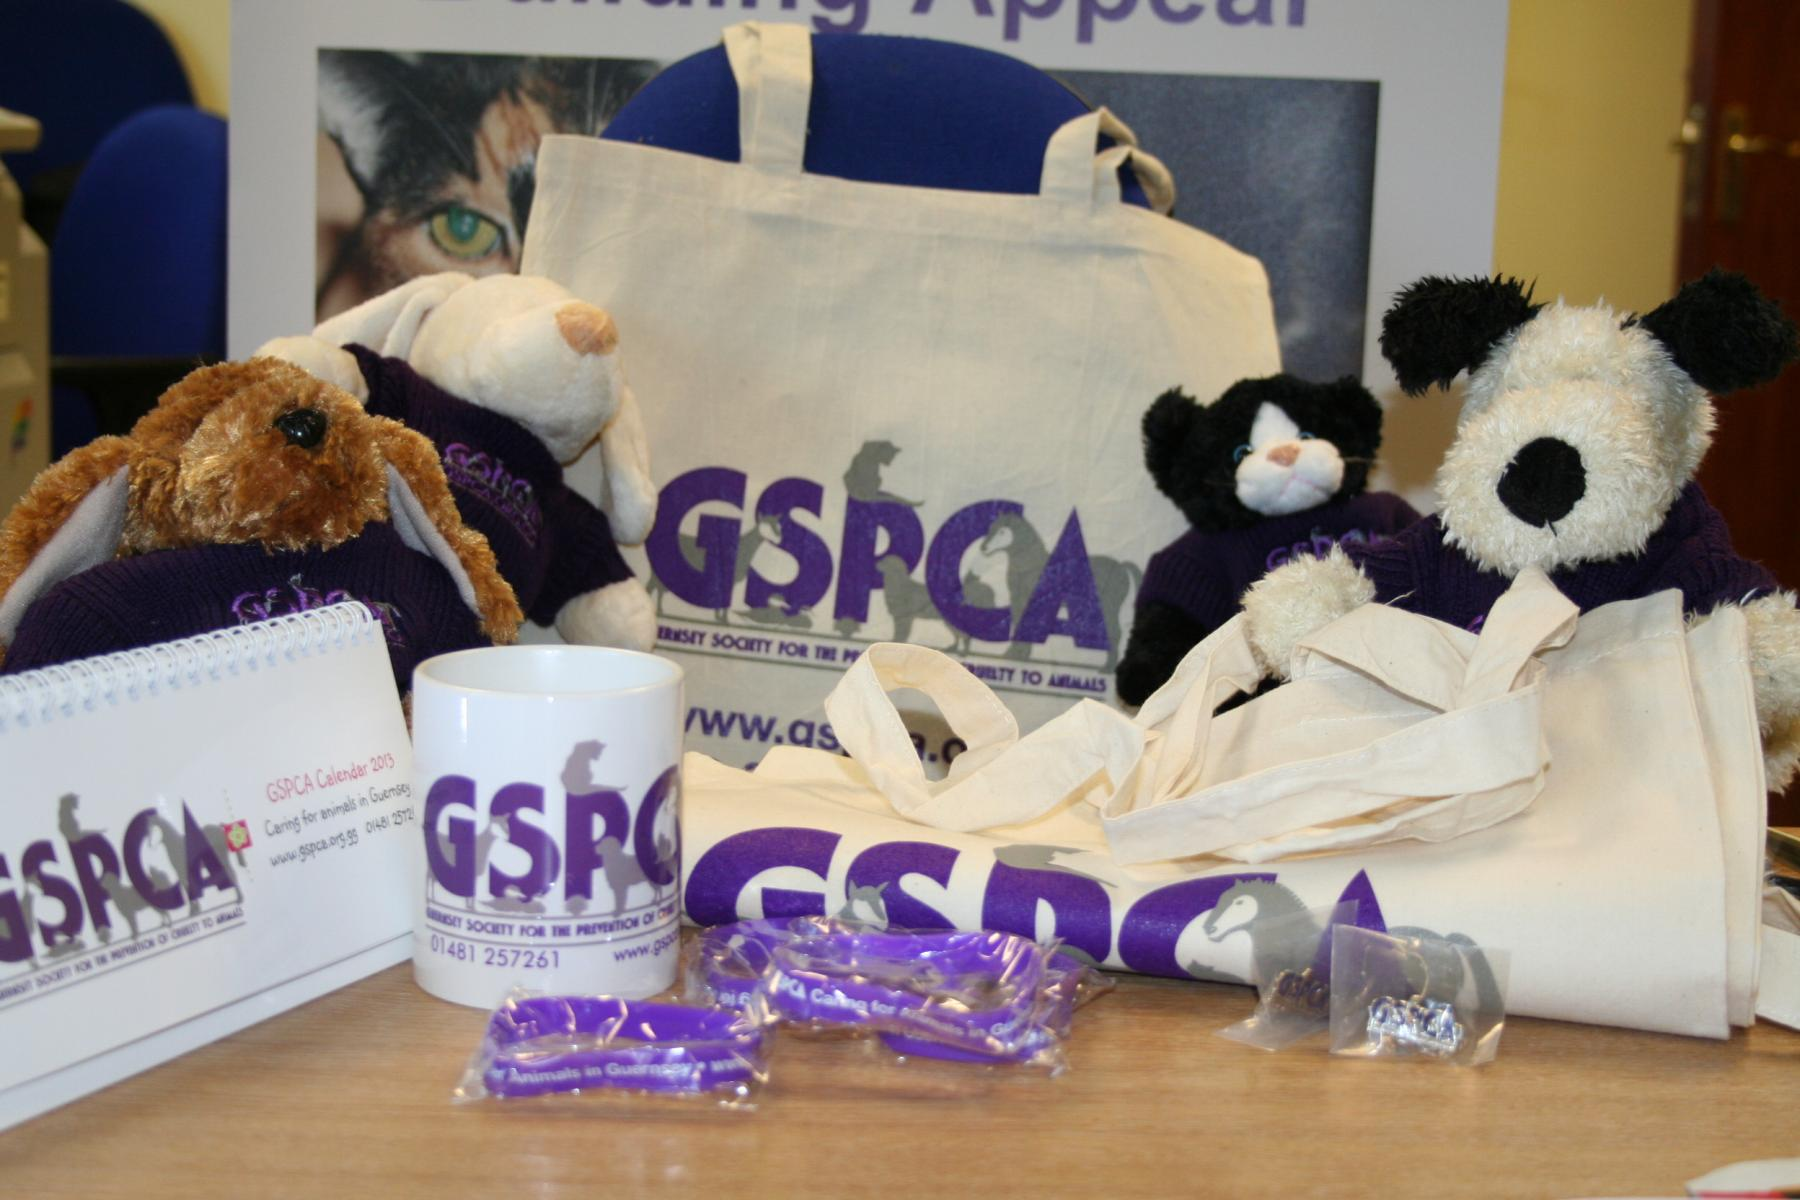 GSPCA Christmas goods on sale at the Late Night Shopping in St Peter Port Guernsey